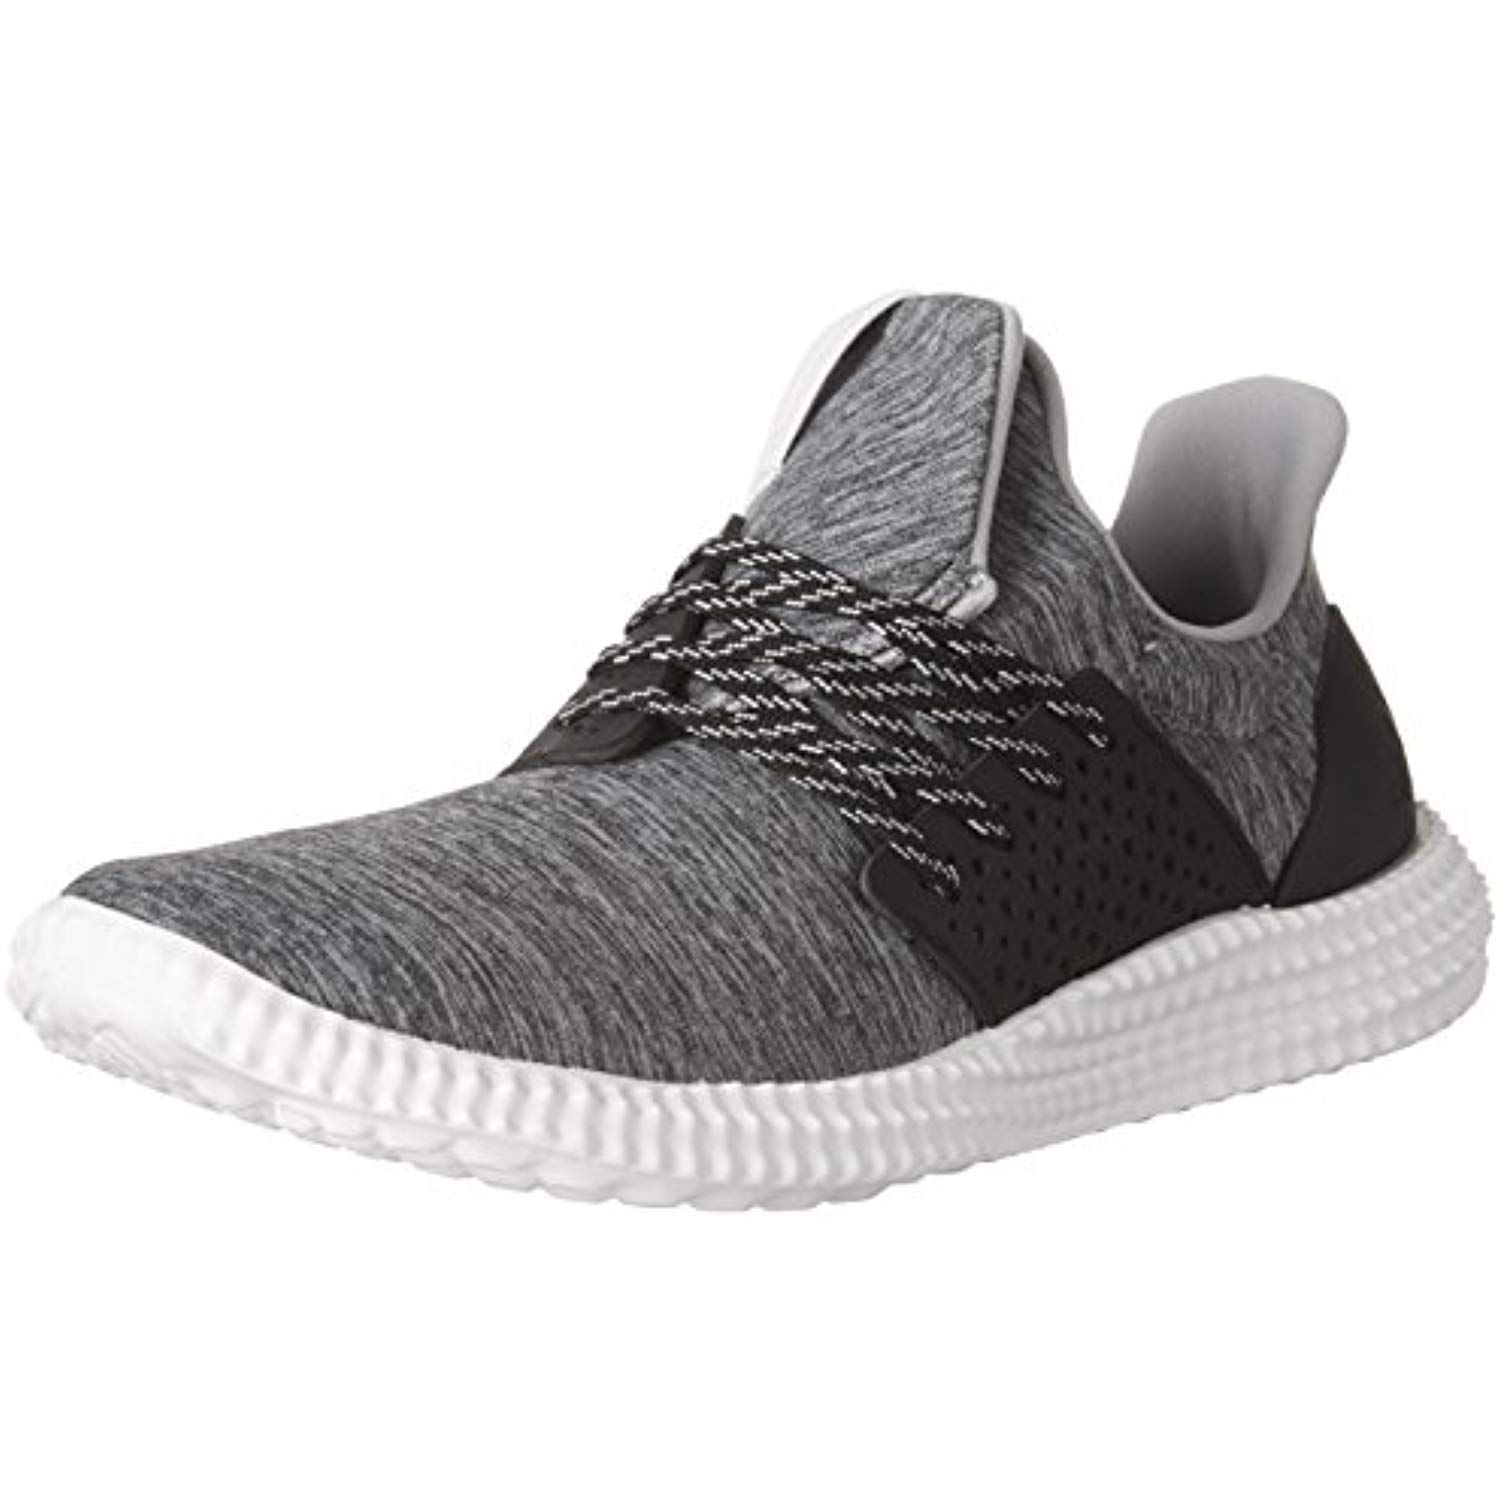 Adidas Women S Athletics 24 7 Training Shoes To View Further